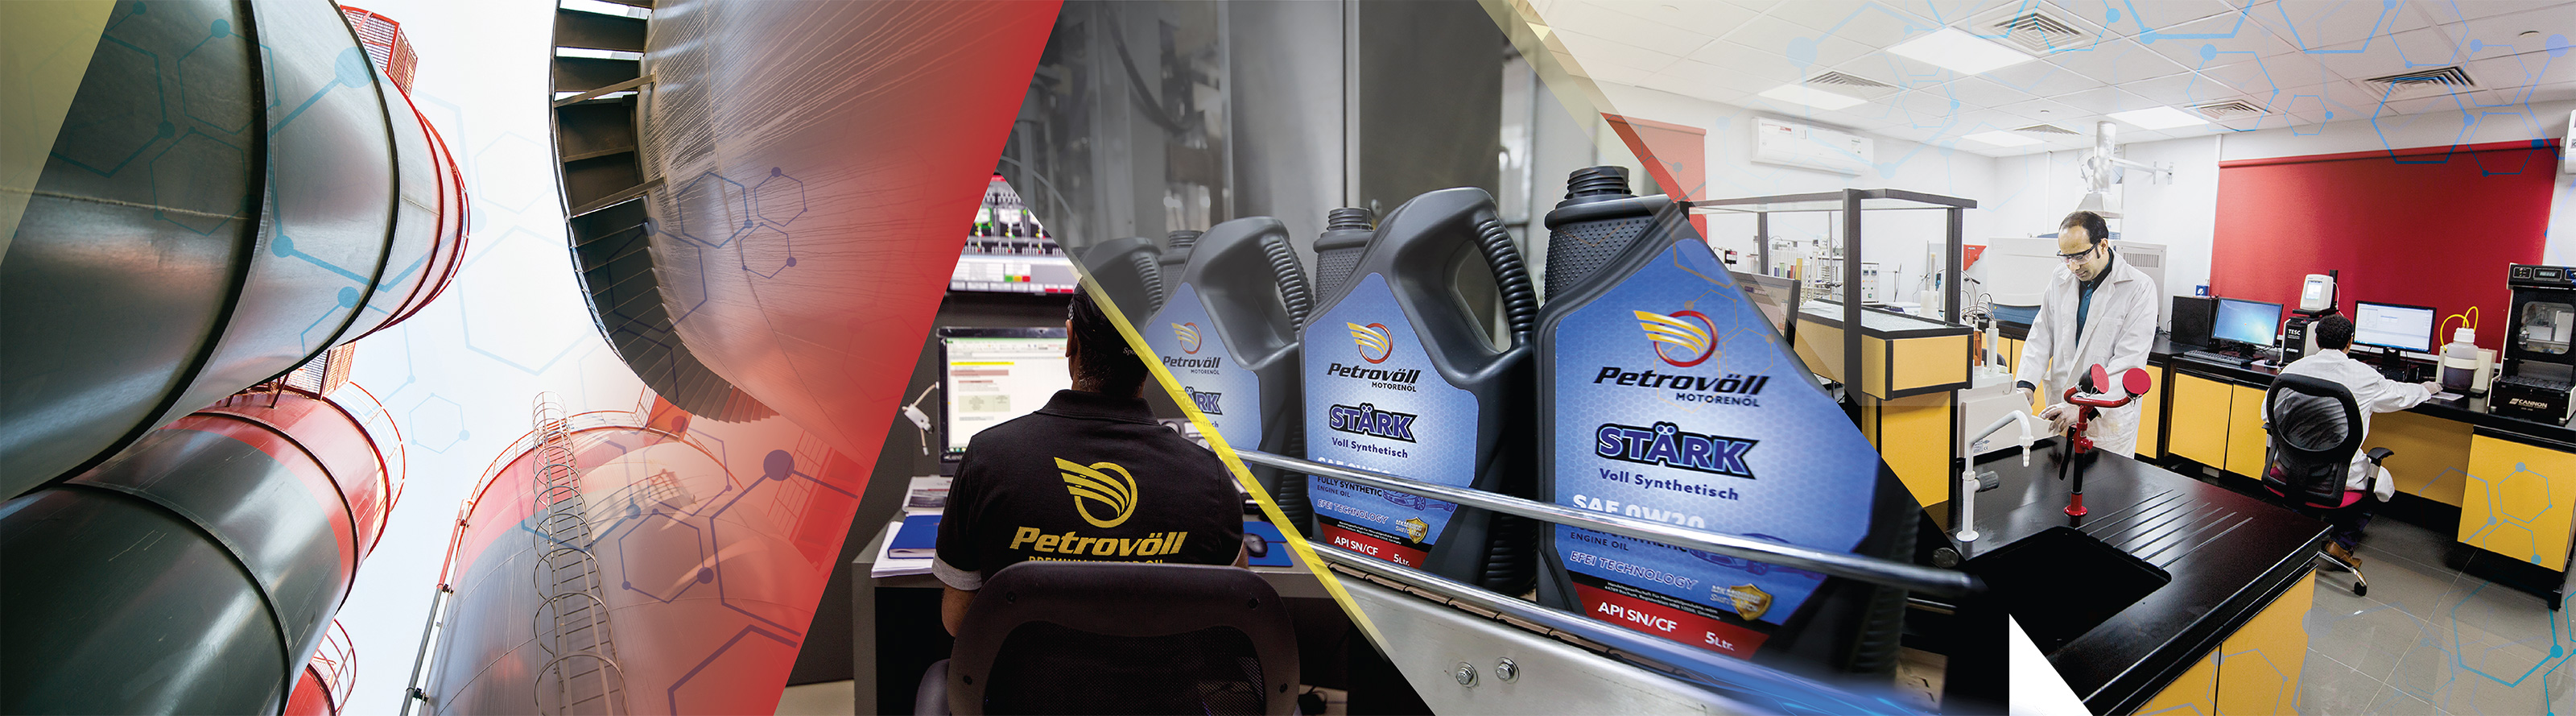 About Petrovoll Gmbh